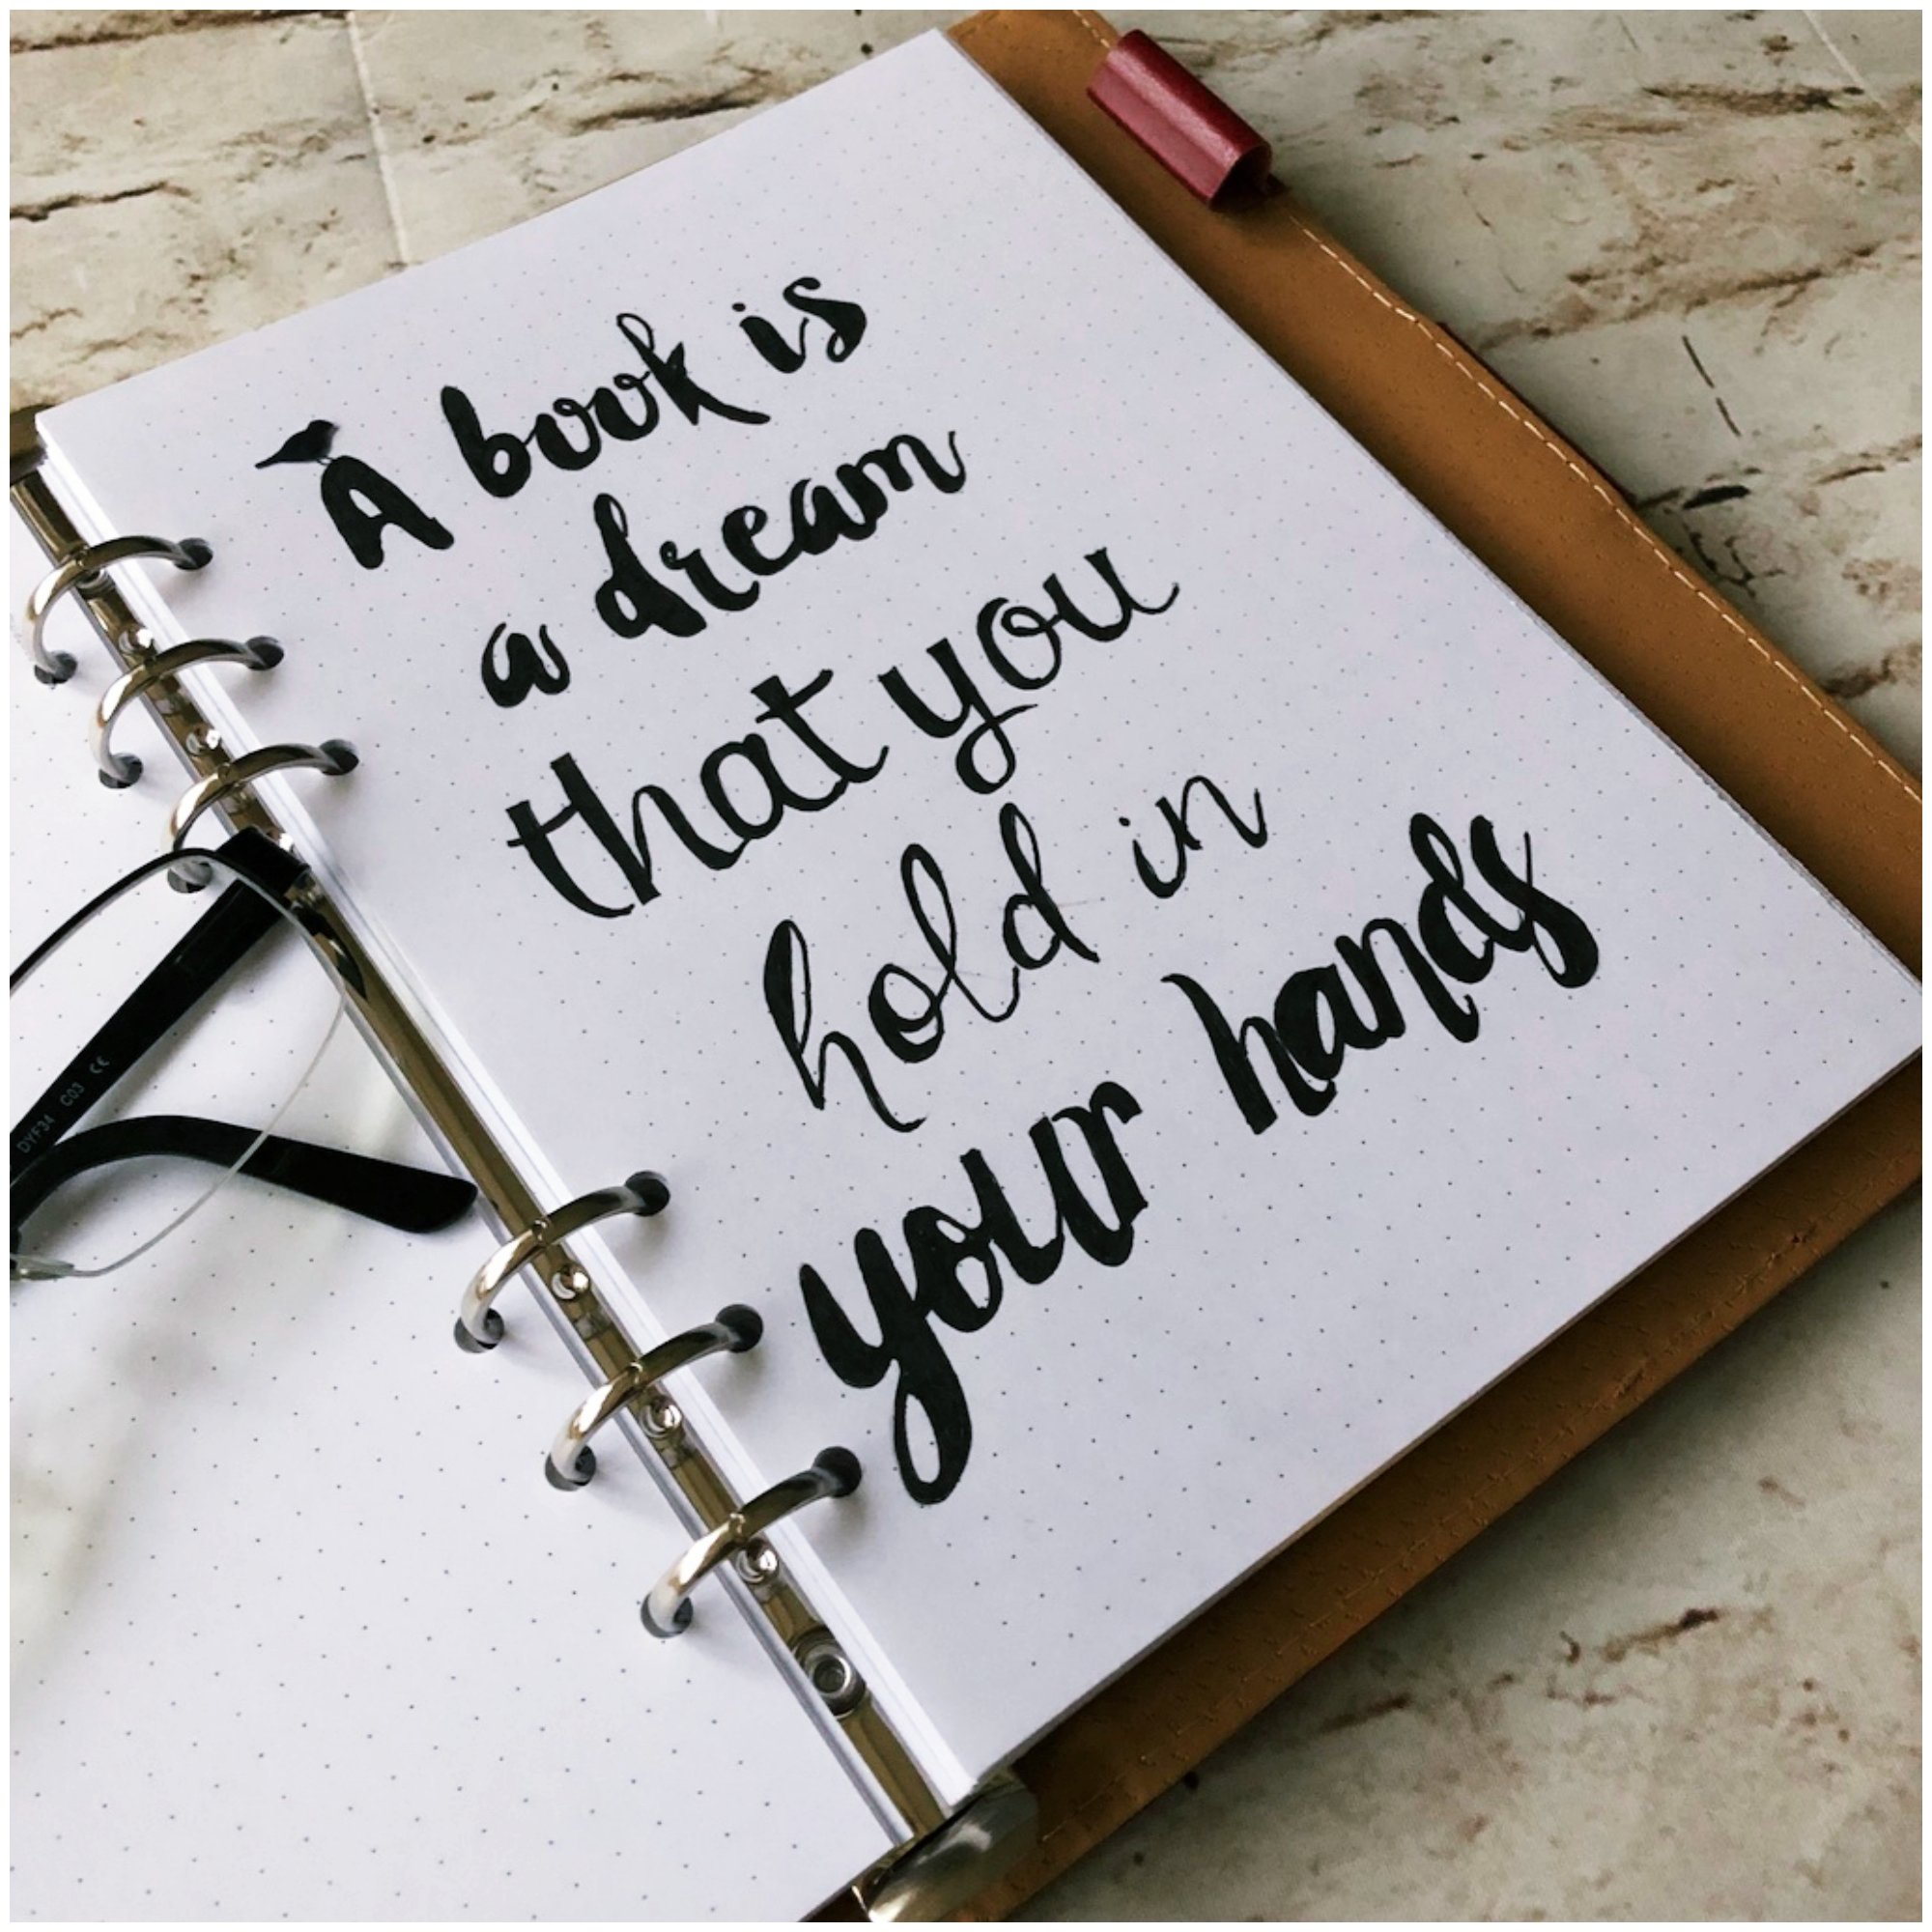 Bullet journal quotes - A book is a dream that you hold in your hands - itstartswithacoffee.com #bulletjournal #quotes #bulletjournaling #lettering